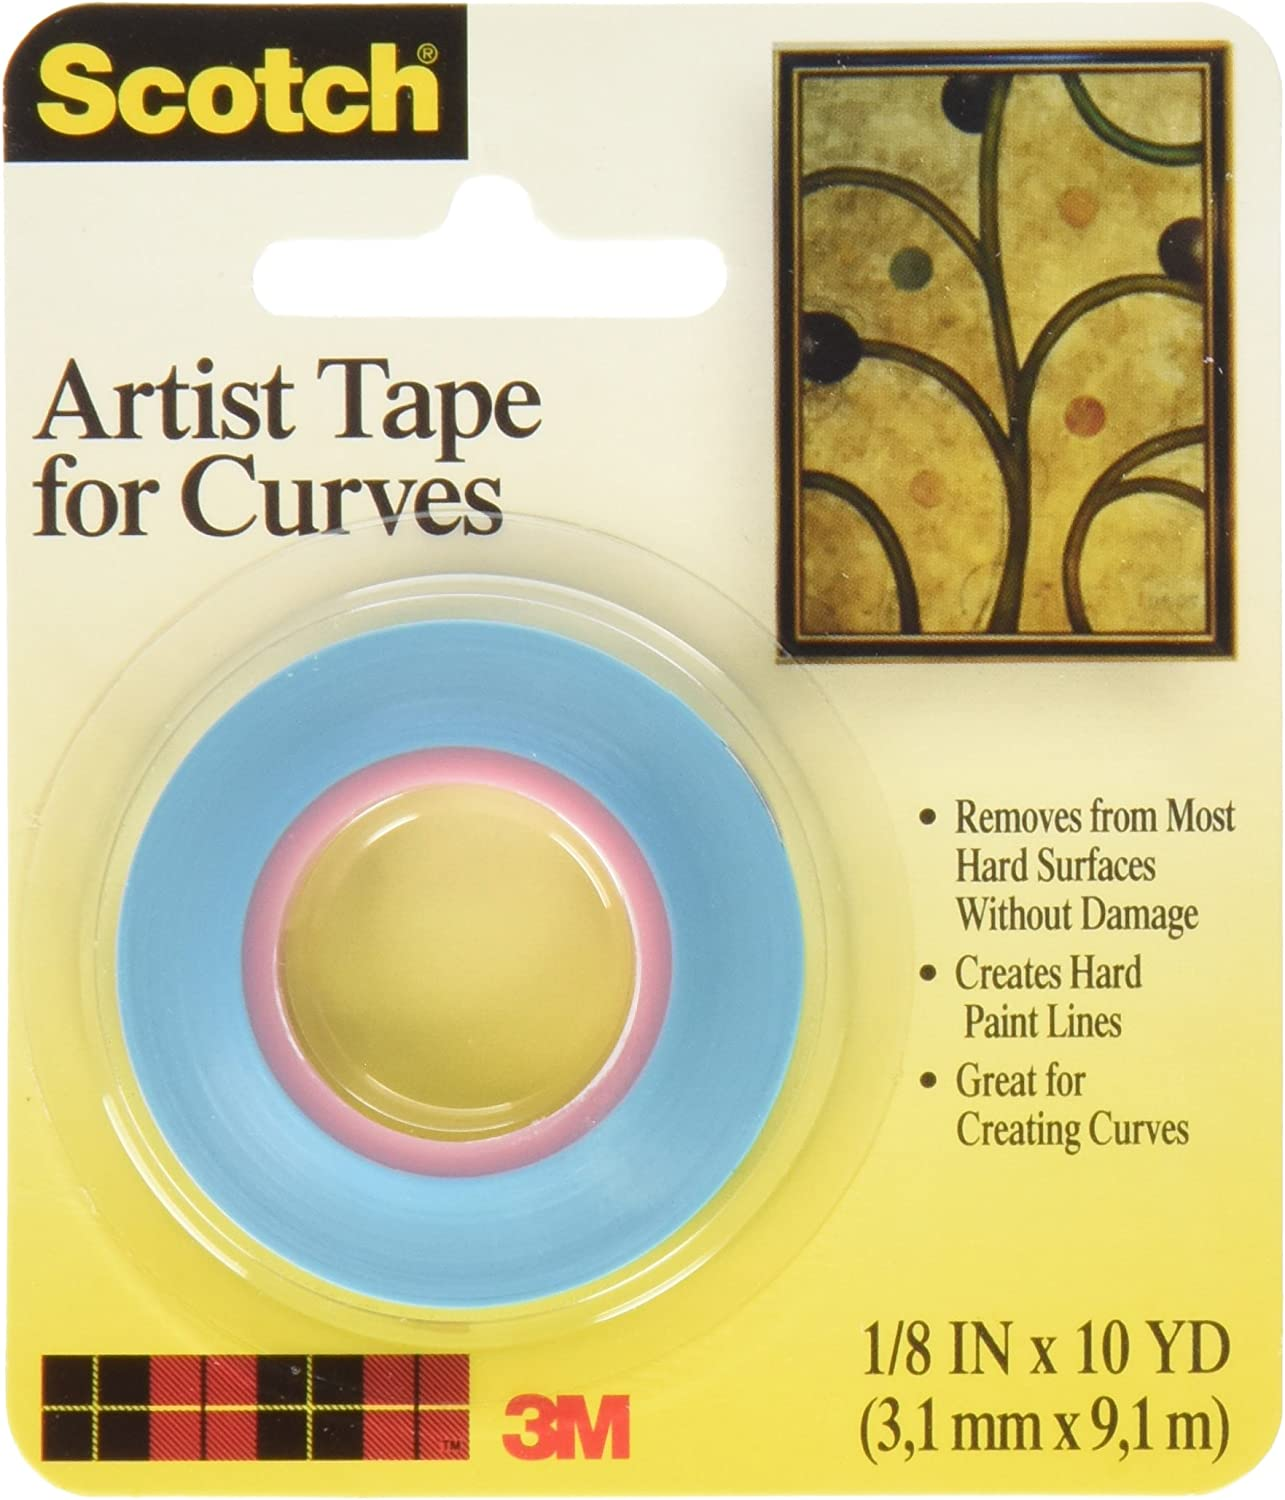 Bulk Buy Buy Buy  3M Scotch Artist Tape For Curves 1 8X10 Yards FA2038 by 3M B003I4CZLW   | Online Outlet Store  761420